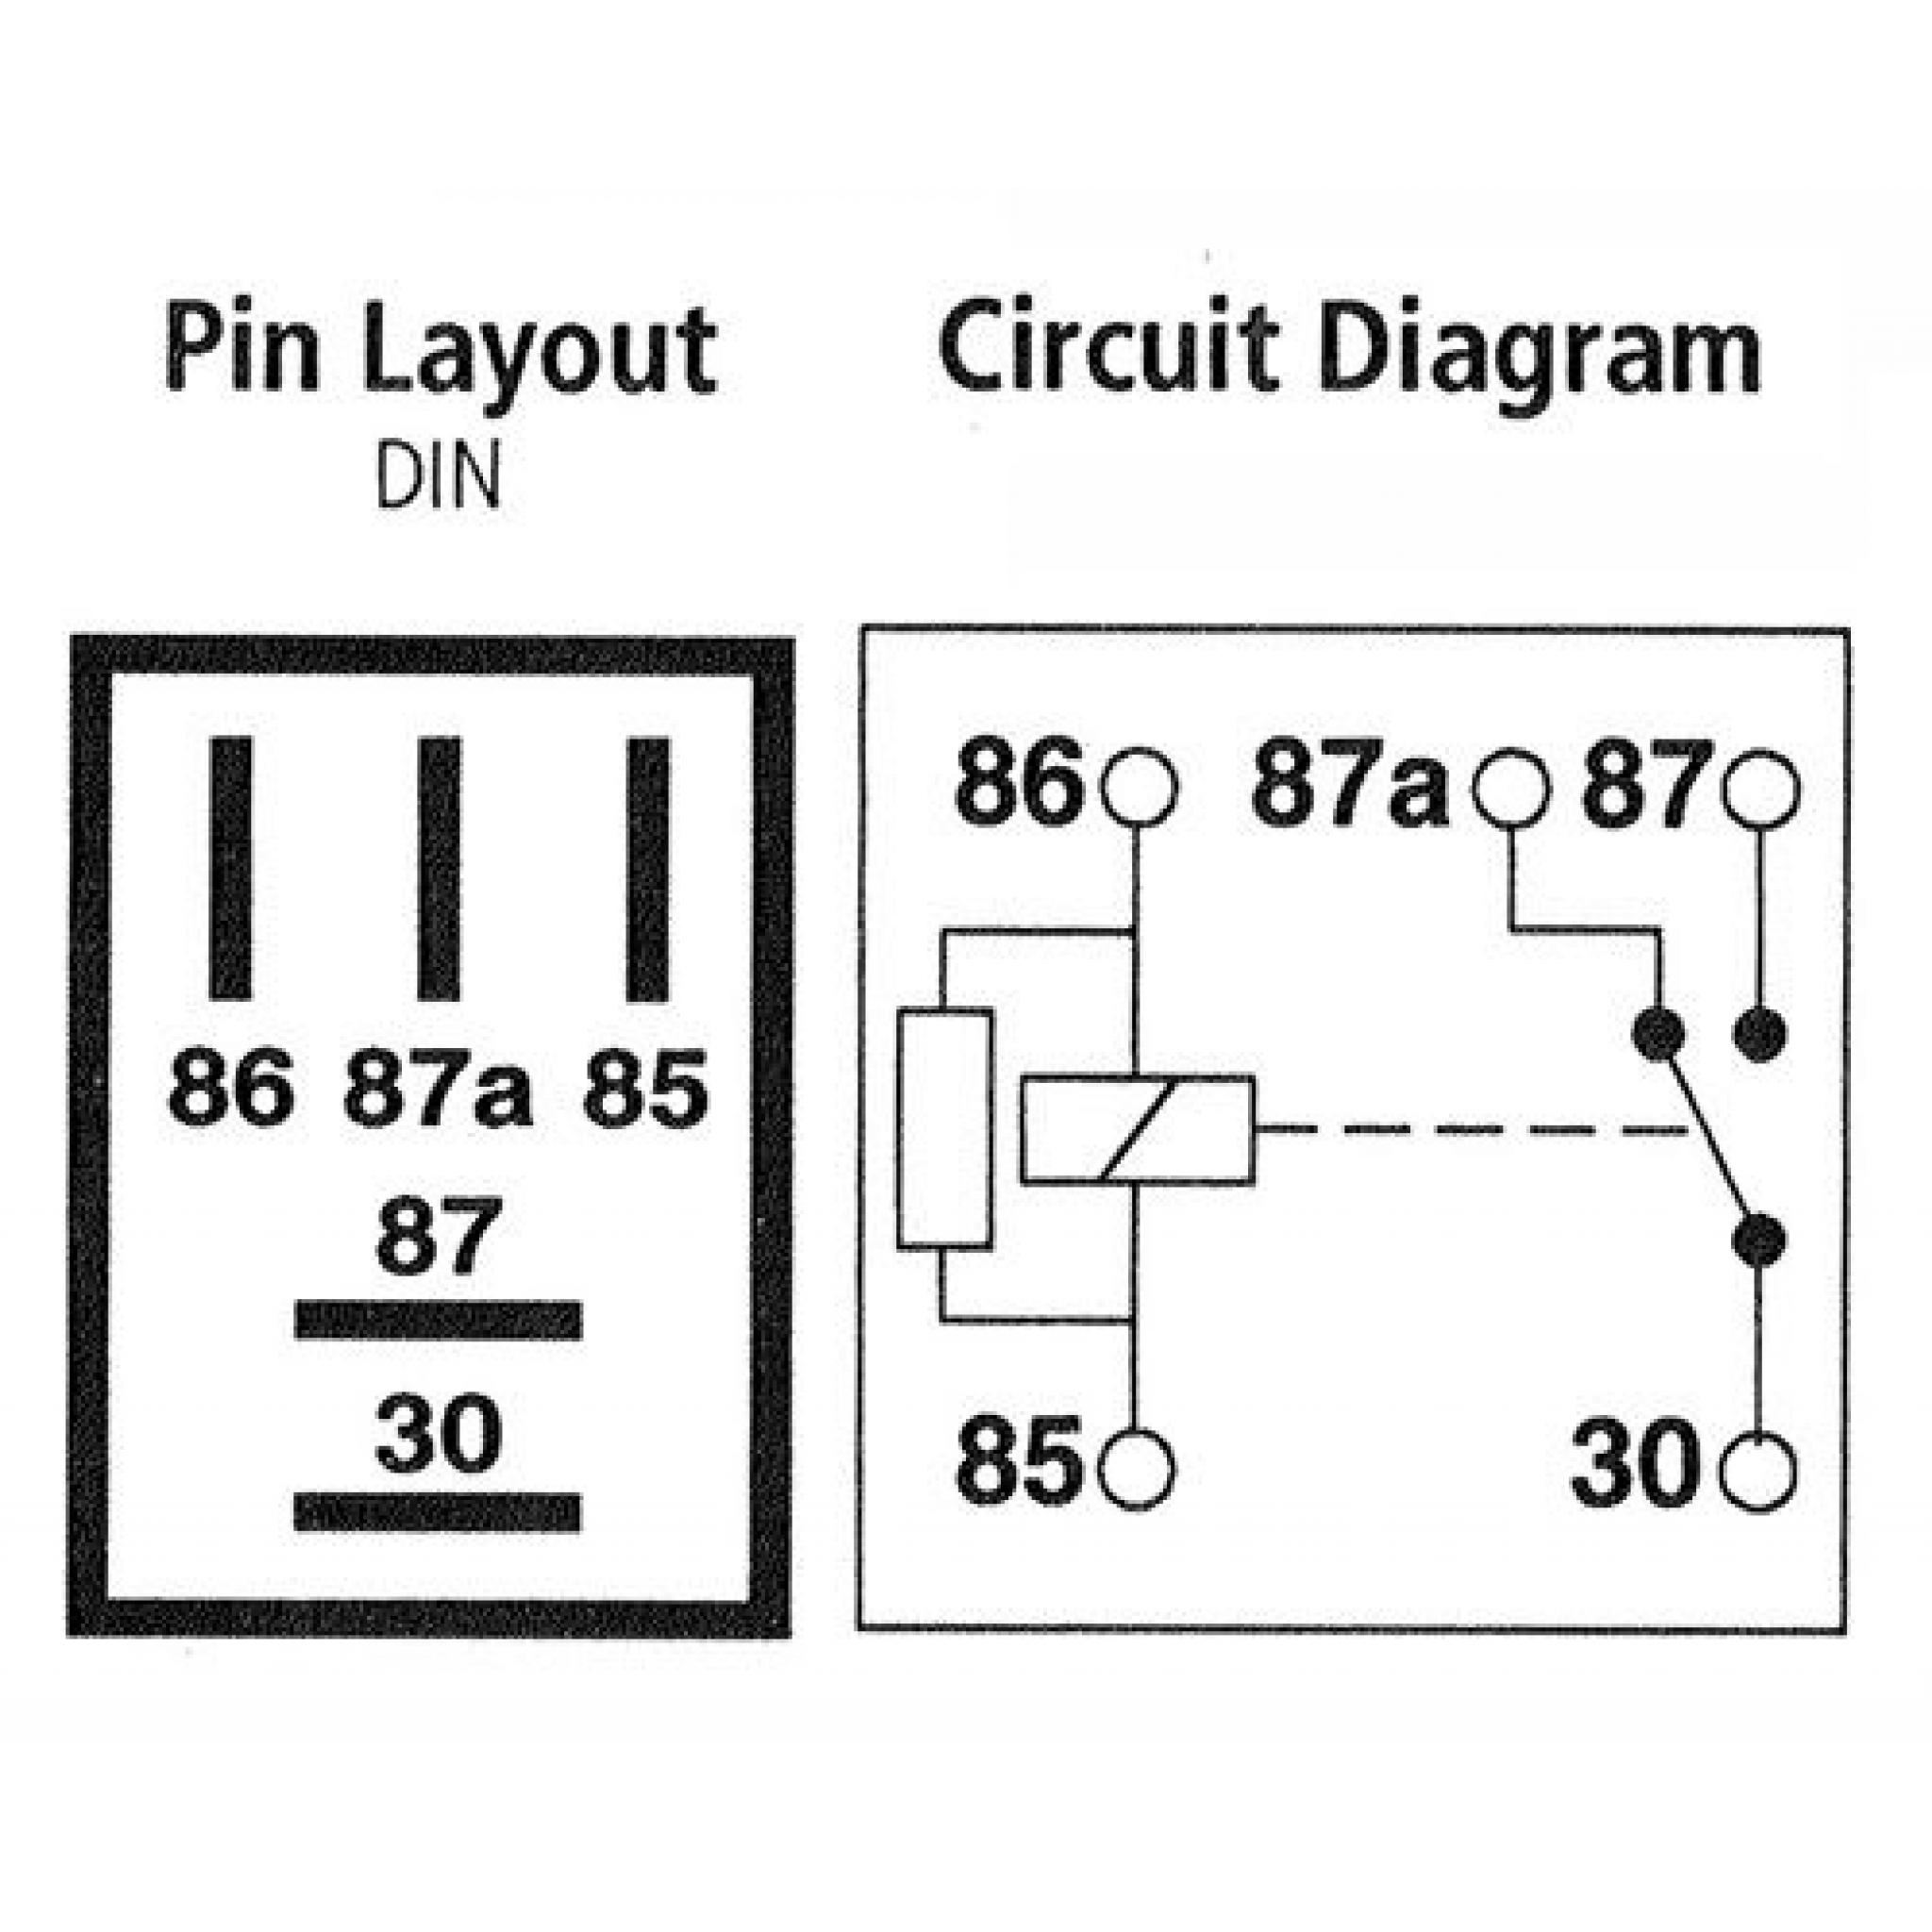 Five Pin Relay Wiring Diagram from bits4work-static.myshopblocks.com